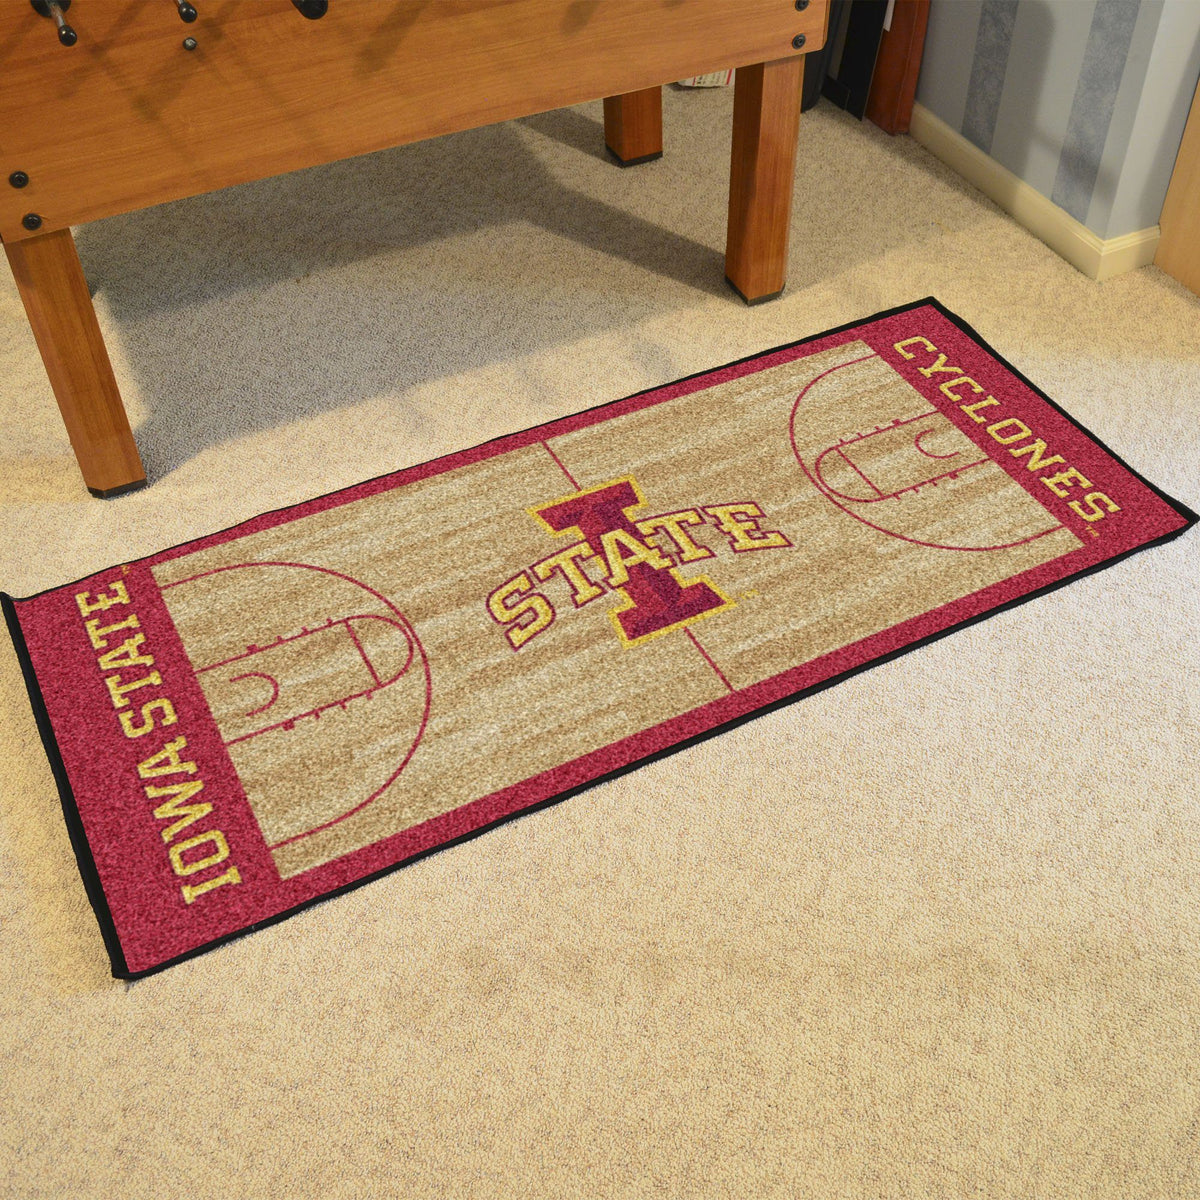 Collegiate - NCAA Basketball Runner Collegiate Mats, Rectangular Mats, NCAA Basketball Runner, Collegiate, Home Fan Mats Iowa State